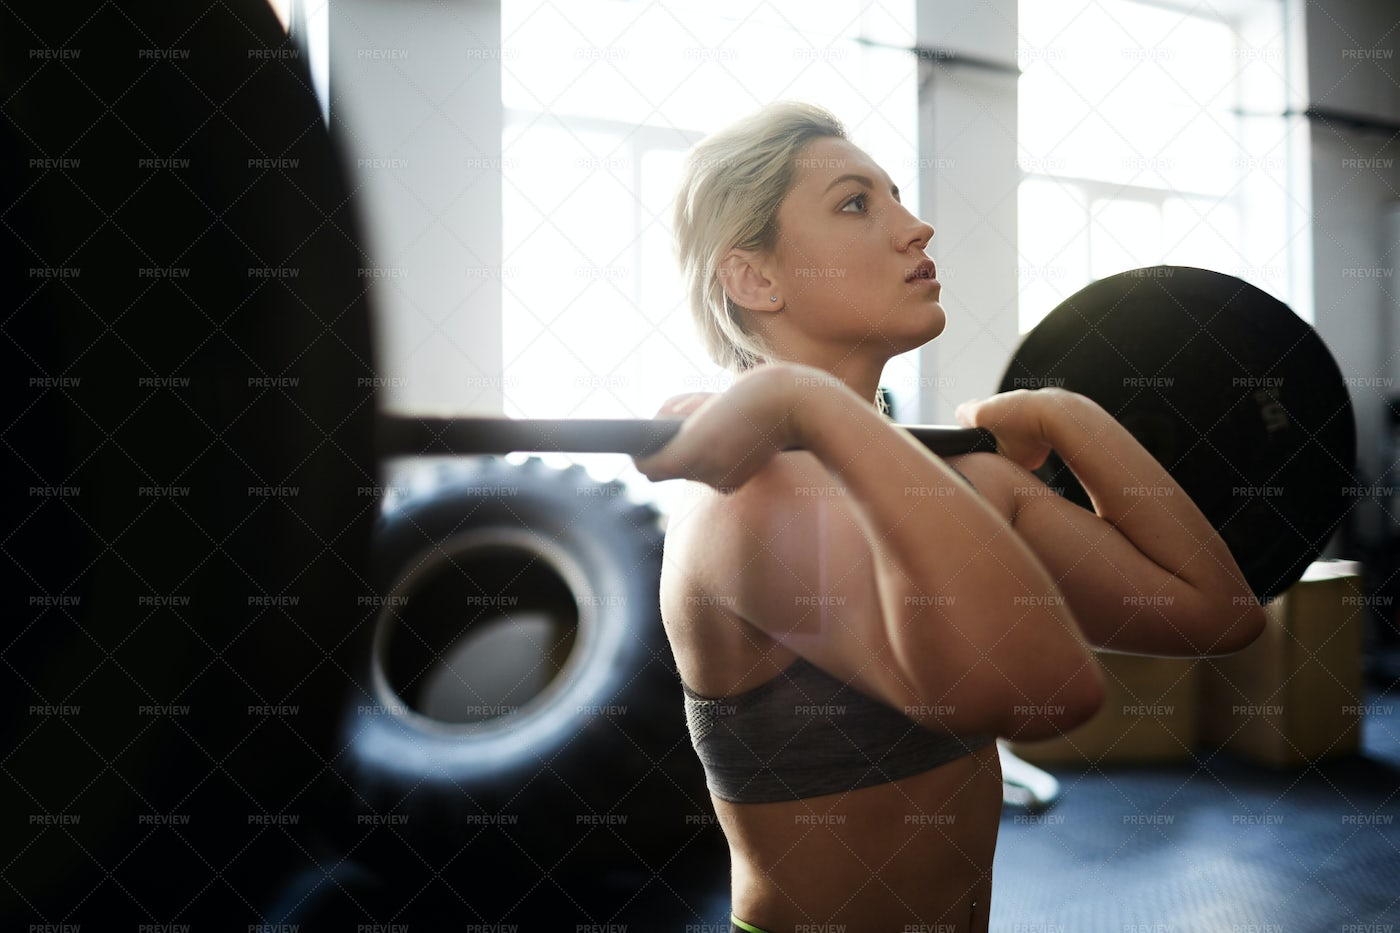 Pretty Woman Lifting Barbell: Stock Photos